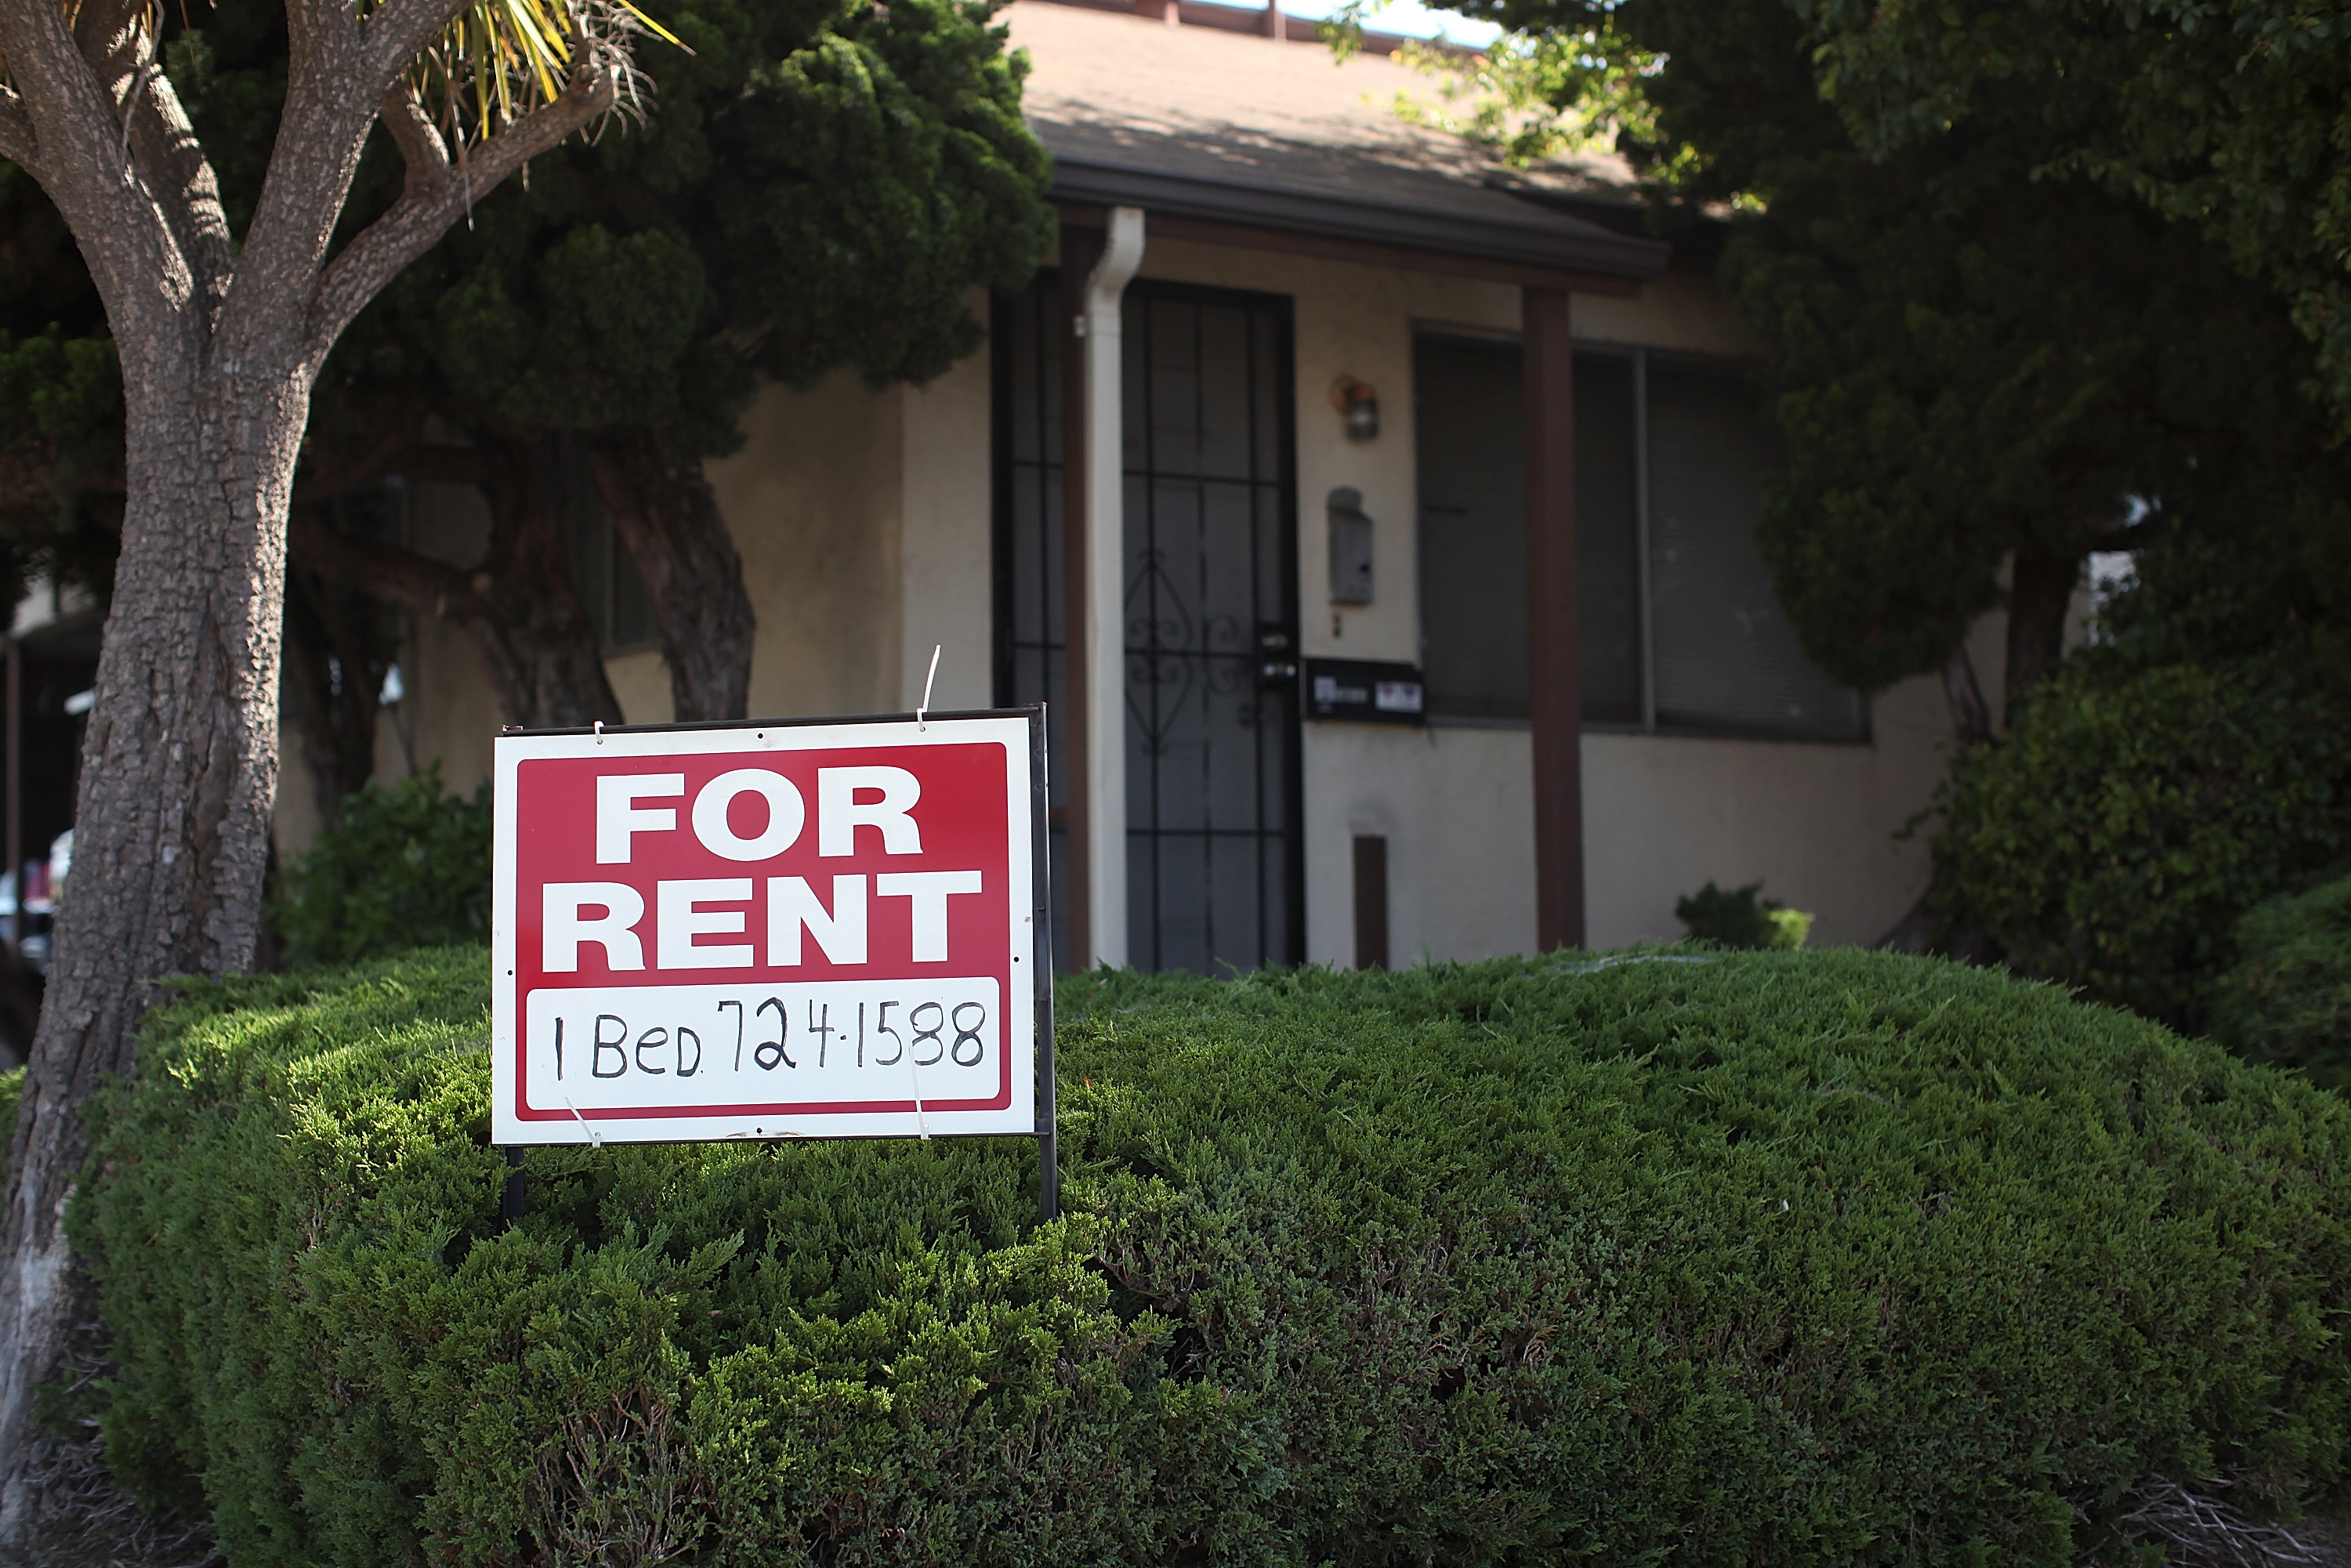 House Apartment For Rent Orange County